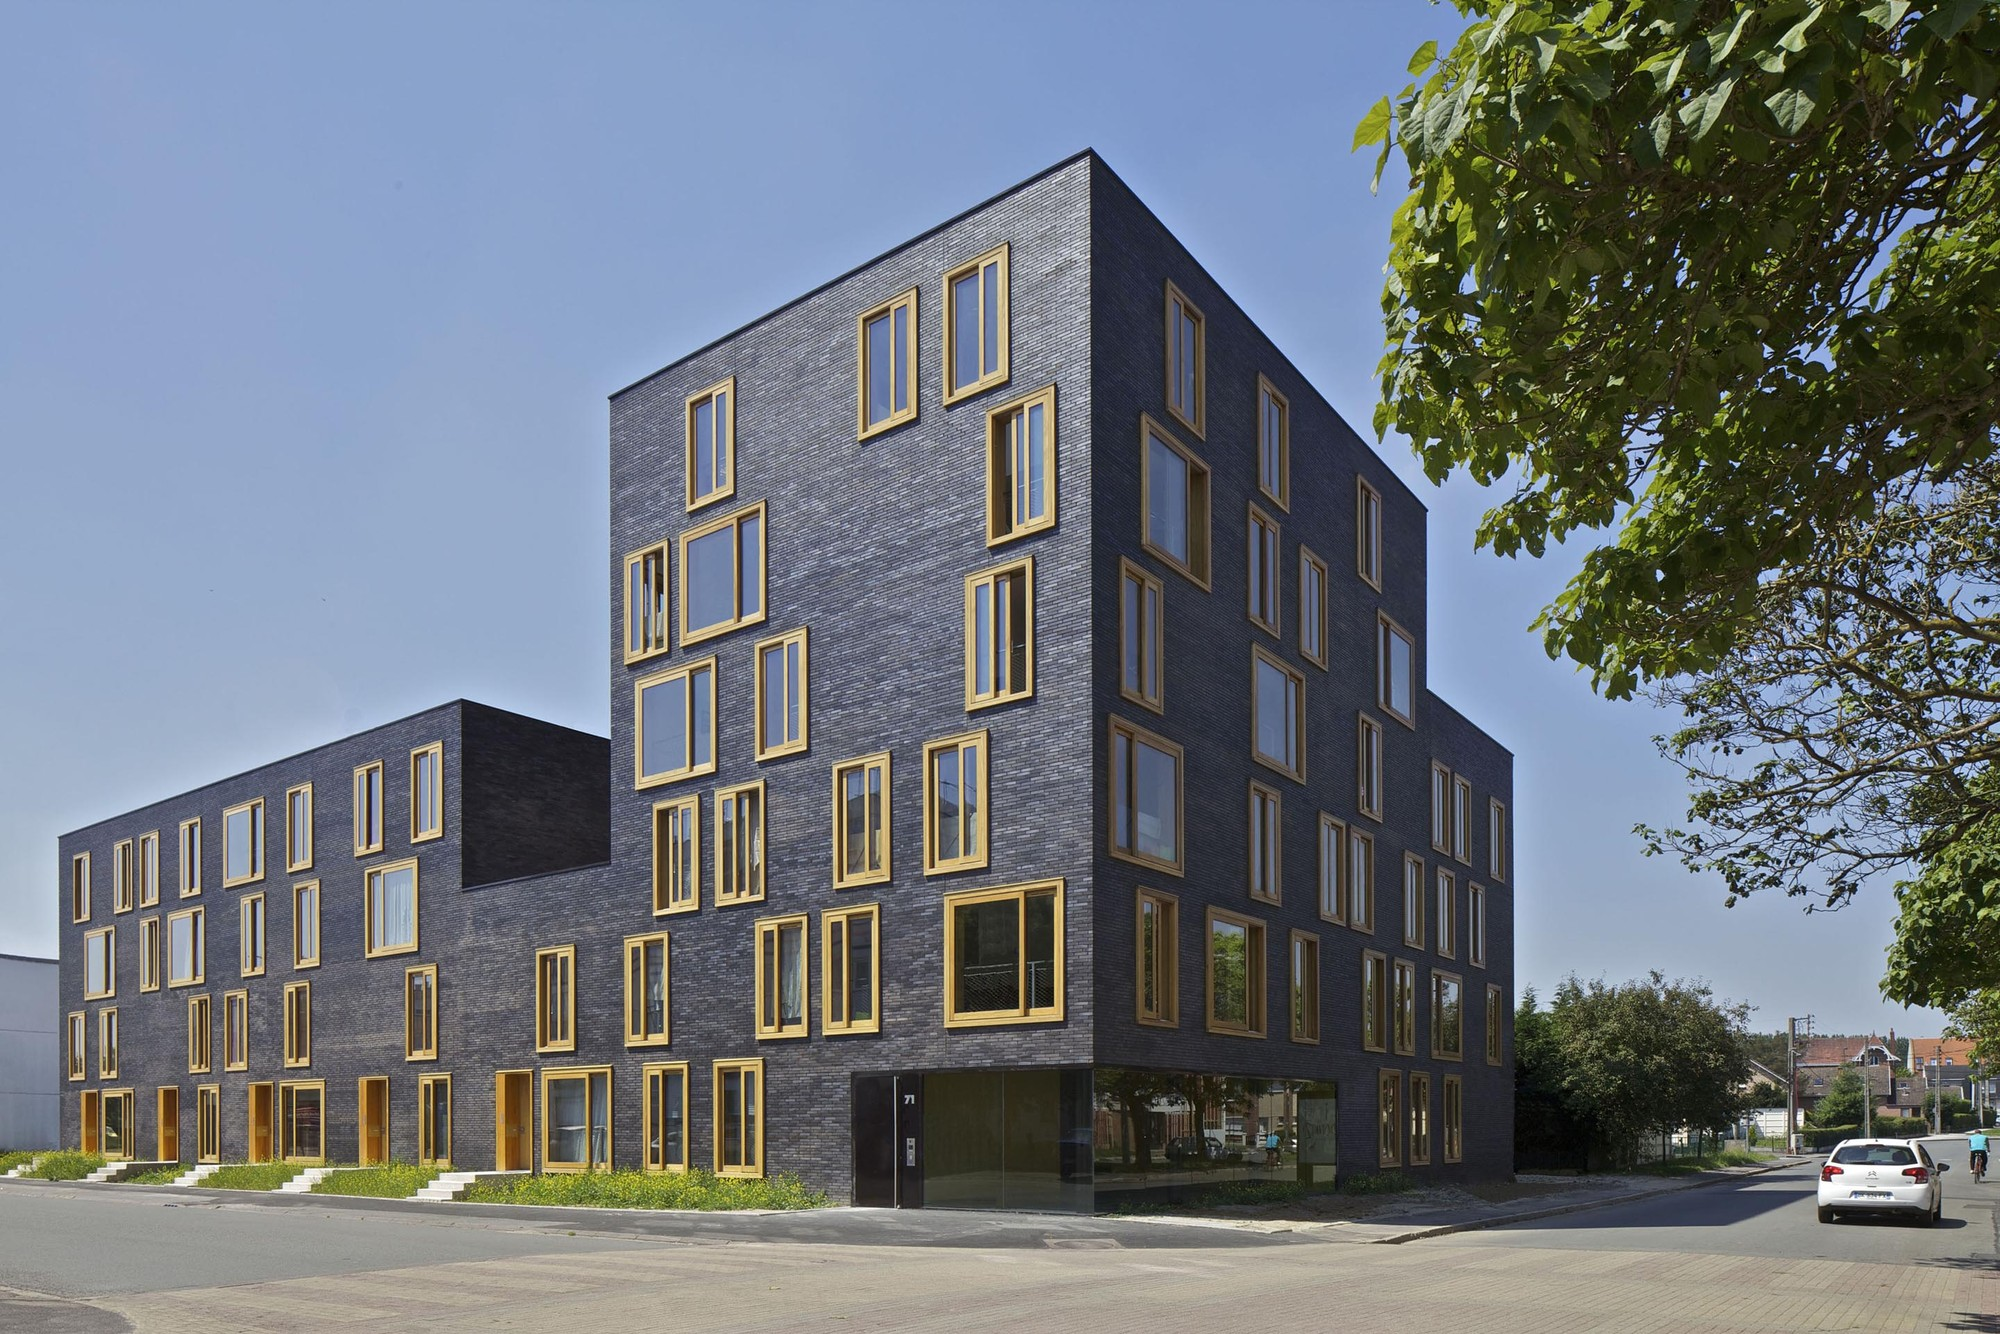 Hollande b thune social housing fres architectes archdaily for Design et architecture